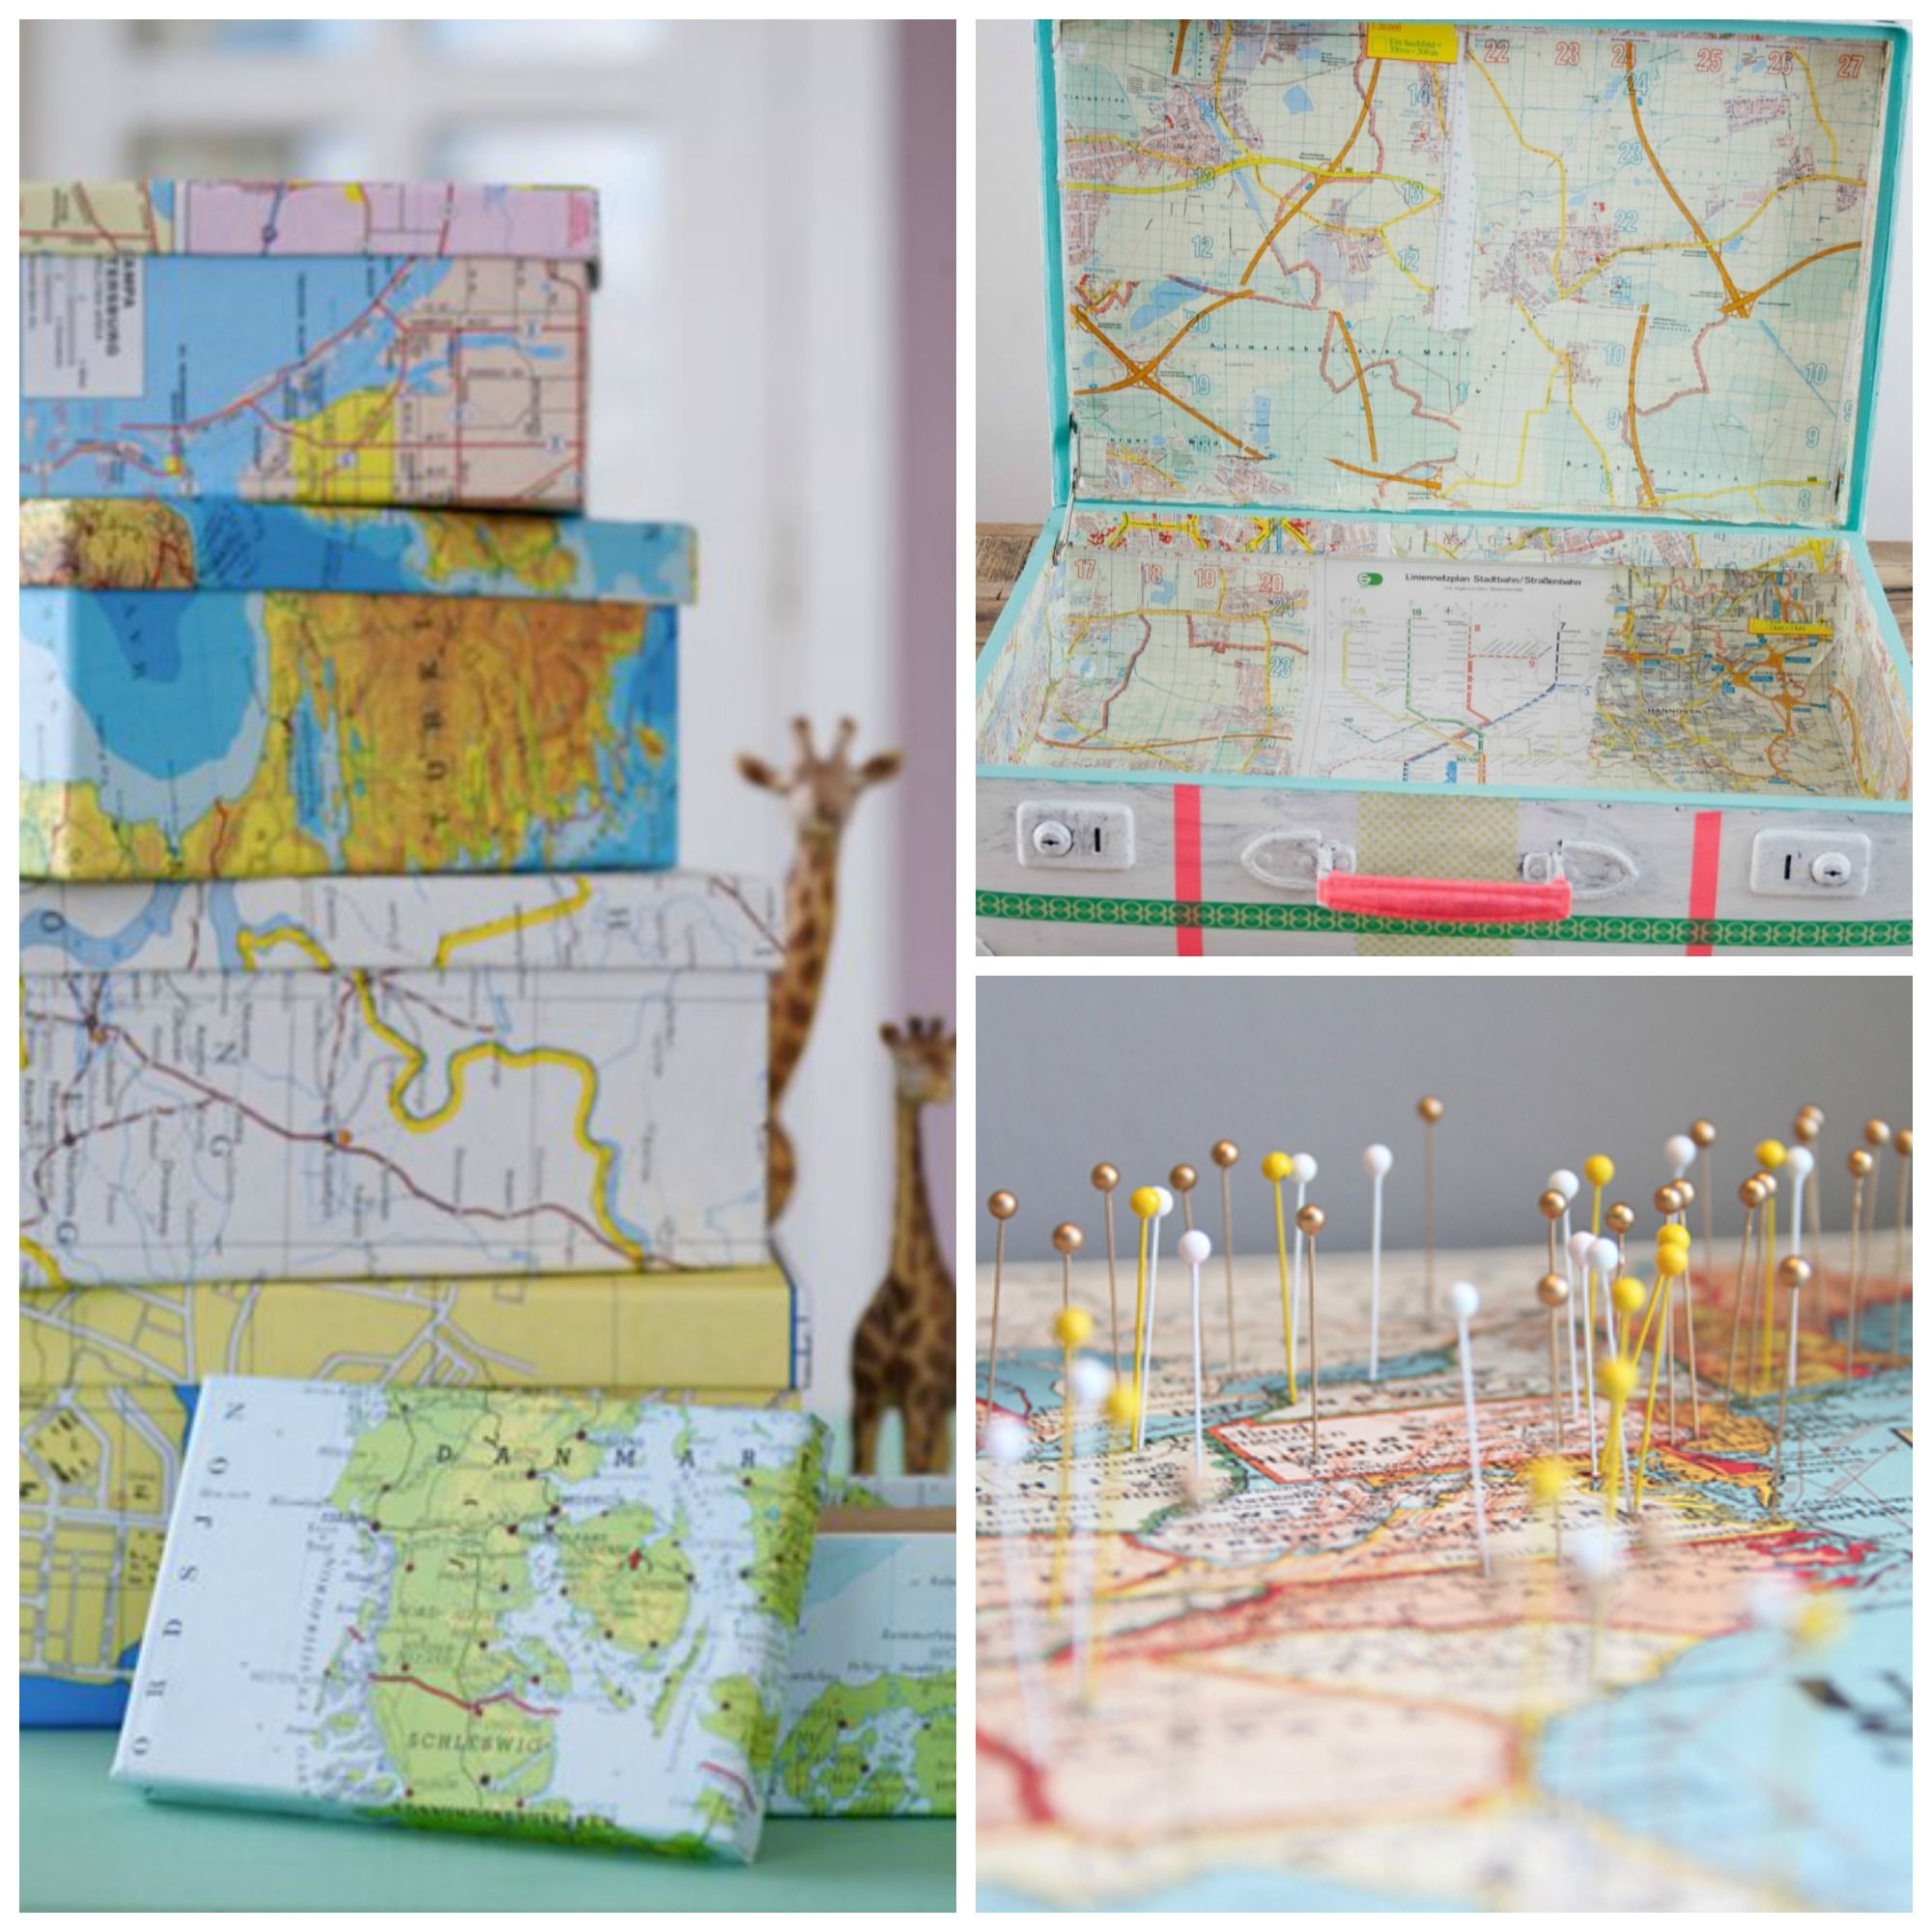 Superb 10 Brilliant Ways To Decorate With Maps, Everything From Suitcases To  Frames. Cool IdeasPaper ... Ideas